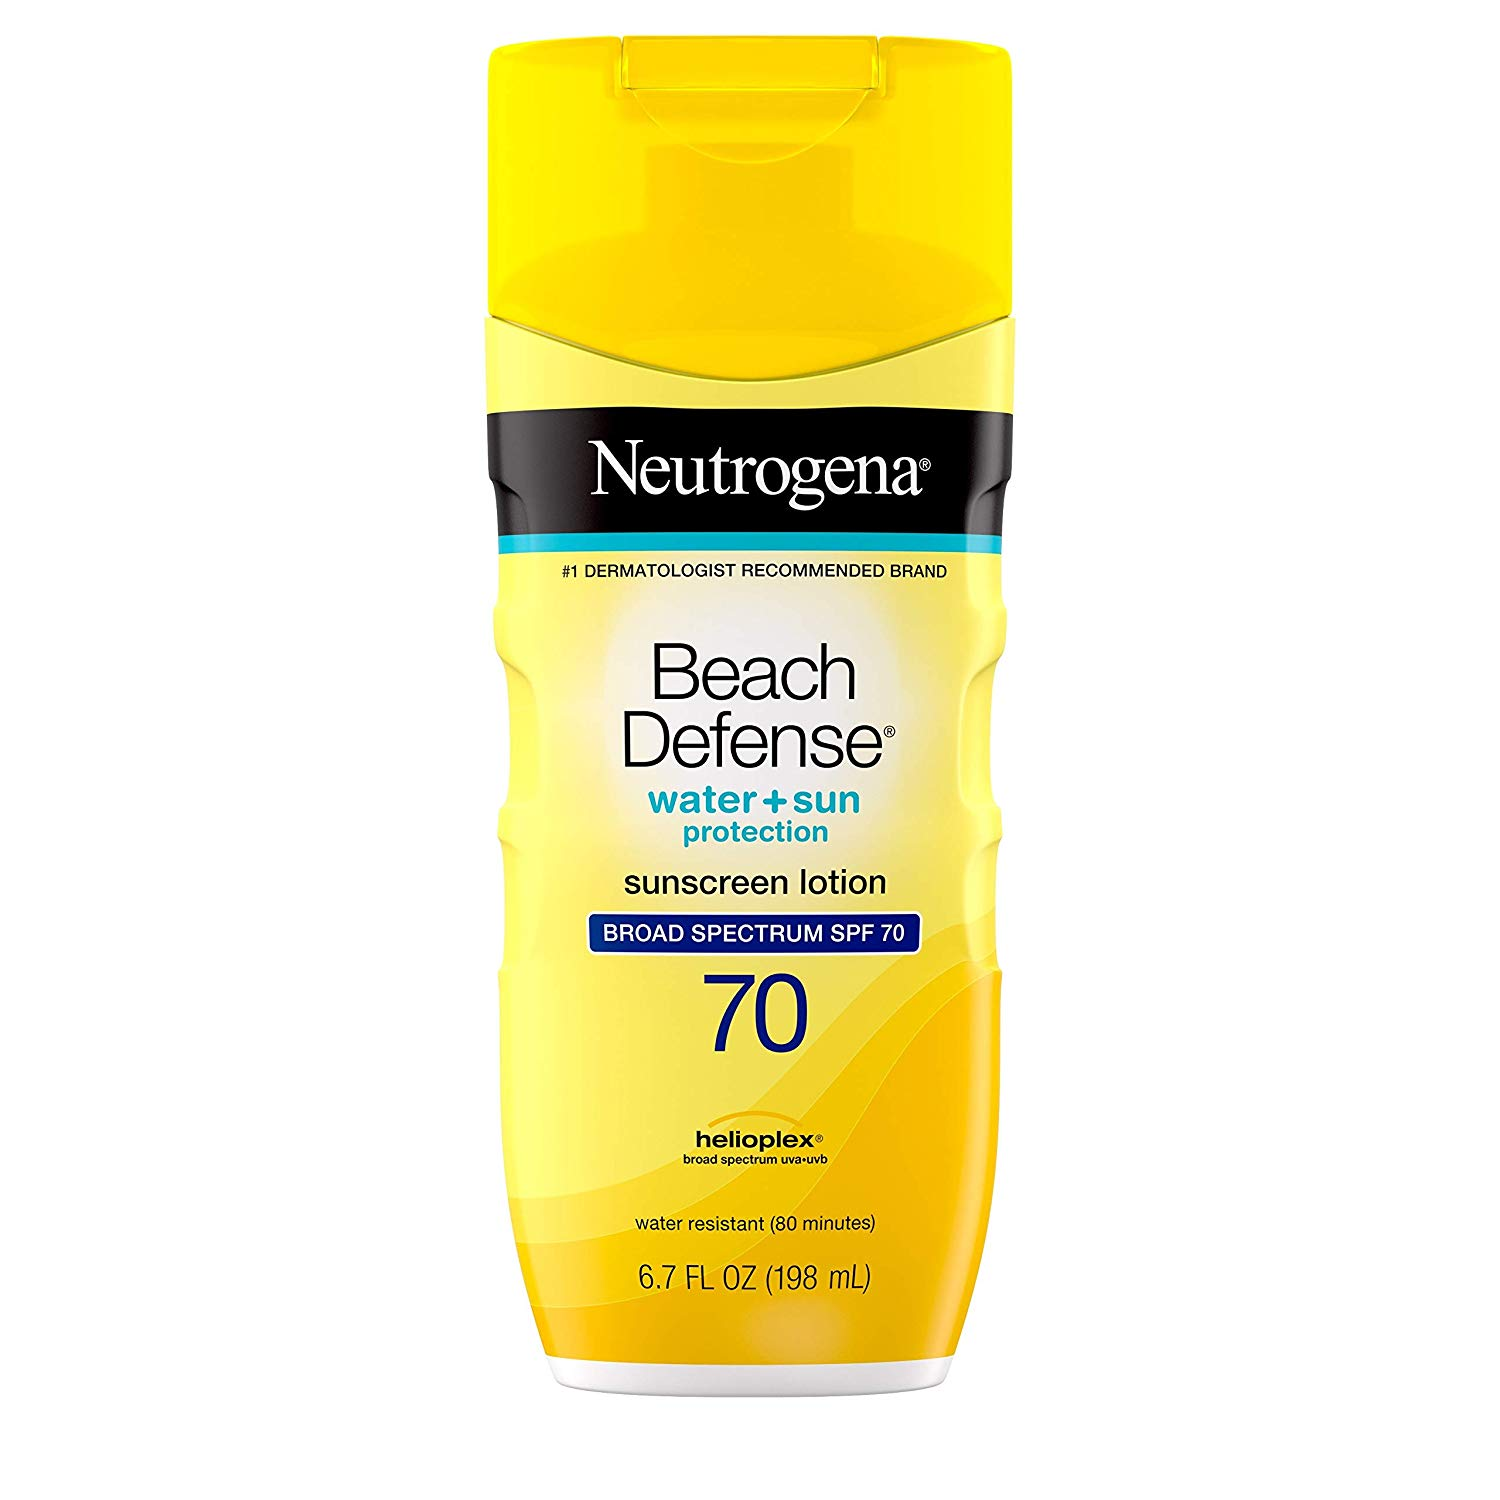 Neutrogena-Beach-Defense-Water-Resistant-Sunscreen-Body-Lotion-with-Broad-Spectrum-SPF-70-Oil-Free-and-Fast-Absorbing-6-7-oz-Packaging-May-Vary-